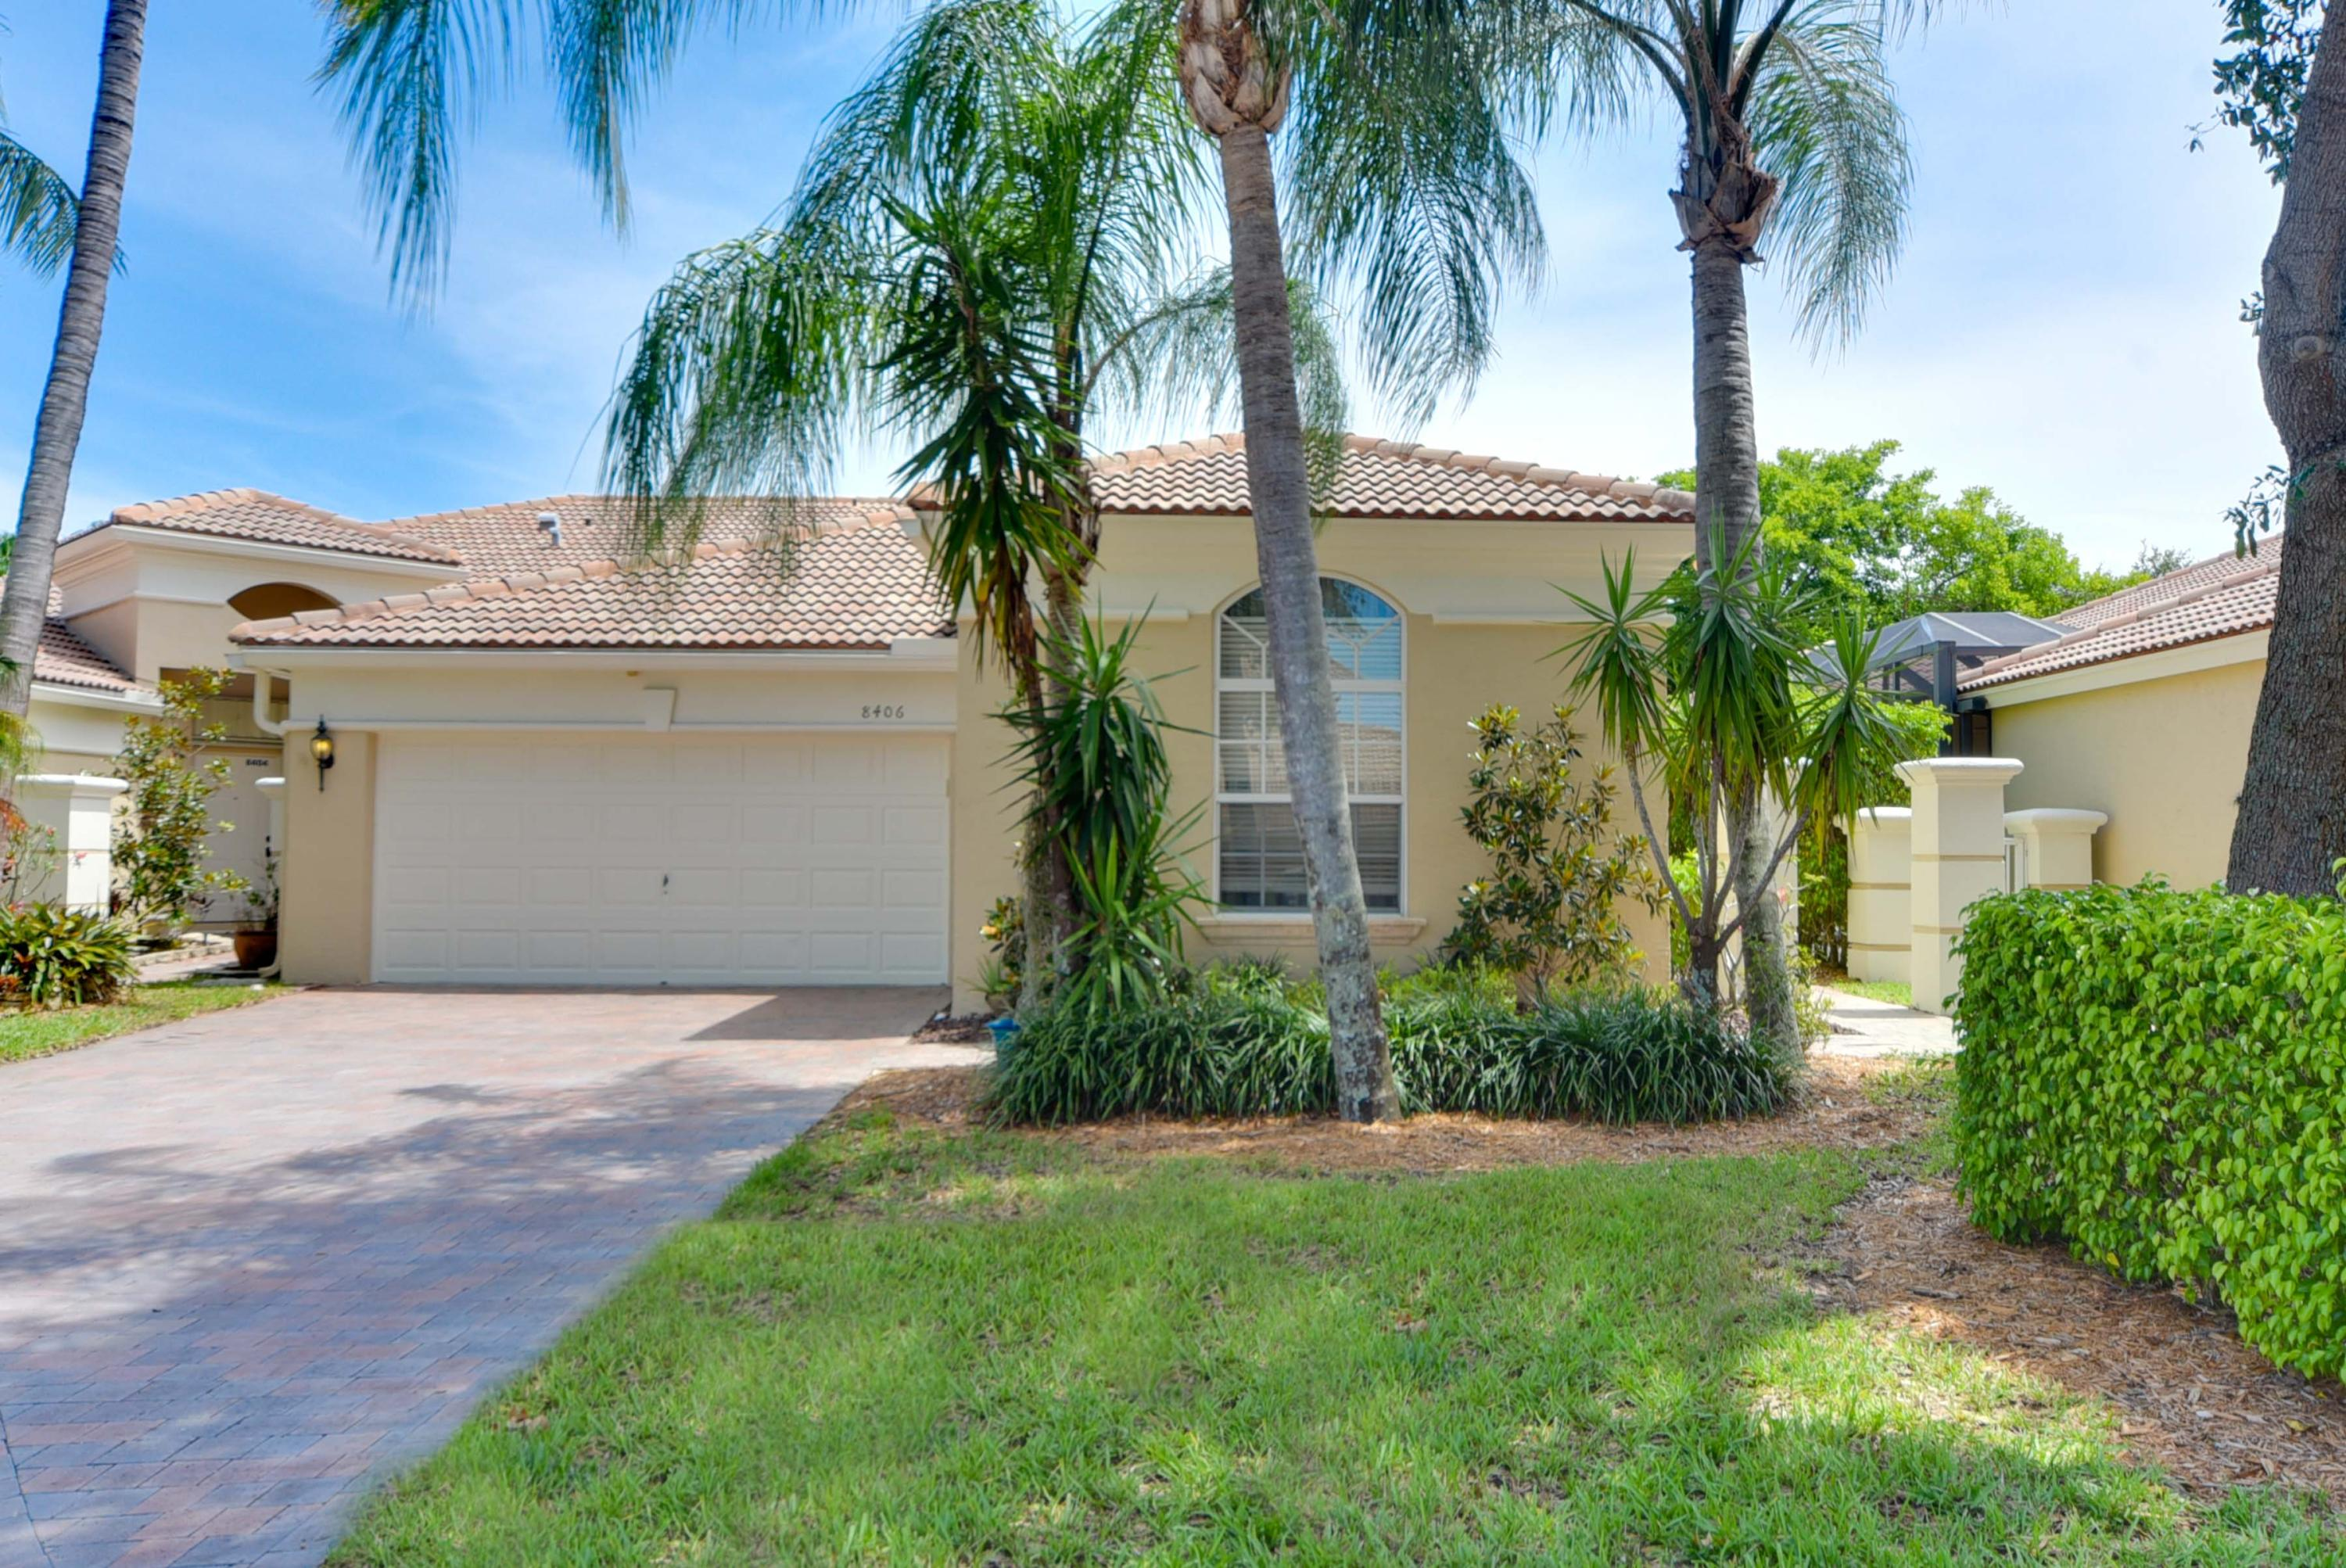 Corcoran, 8406 Staniel Cay, West Palm Beach Real Estate